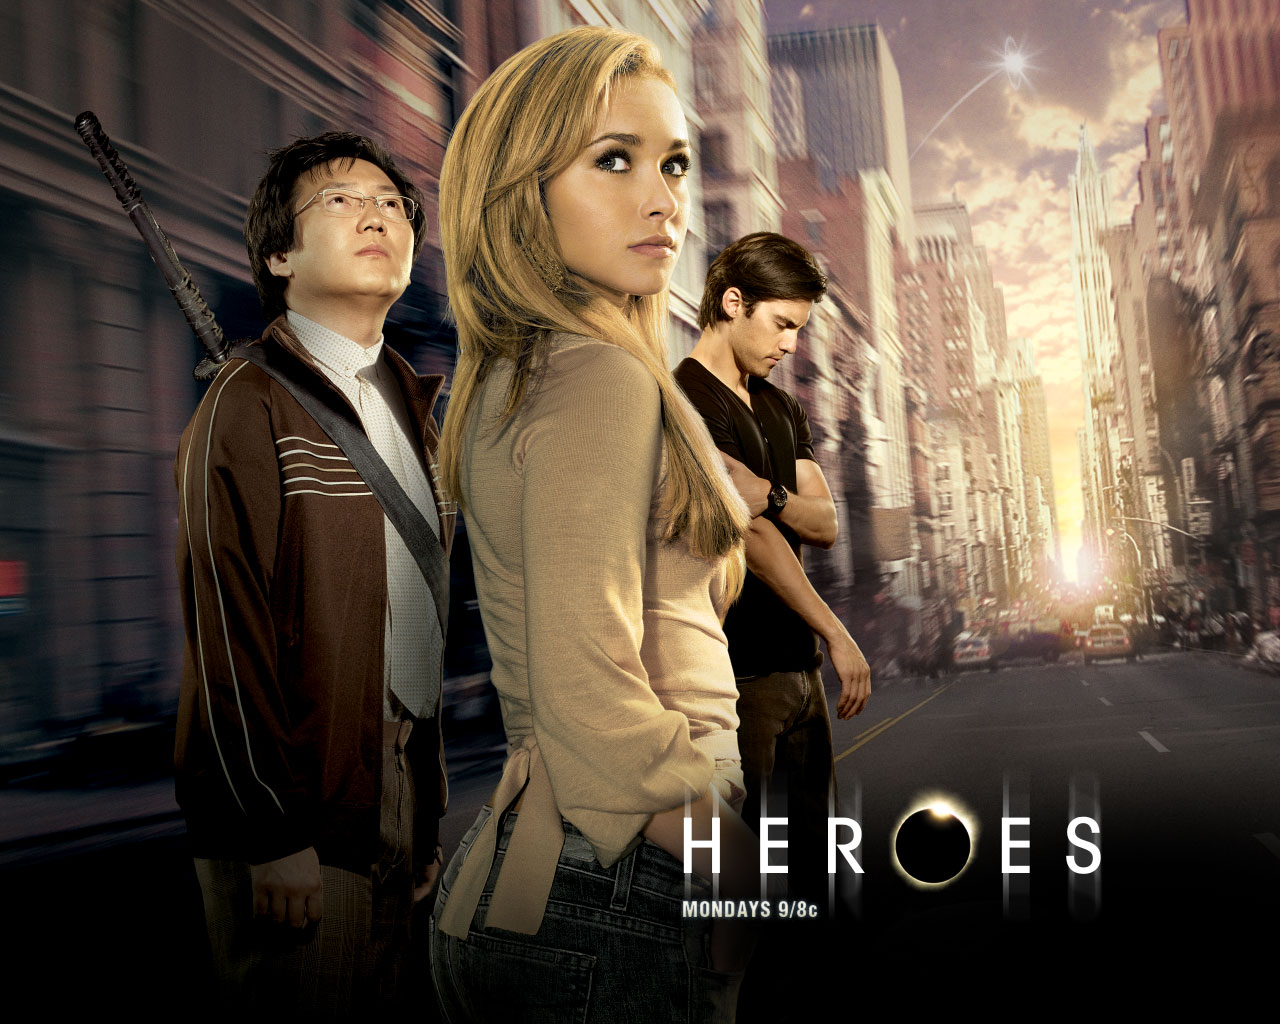 Heroes reborn: enigma free for andoid and ios download |authorstream.